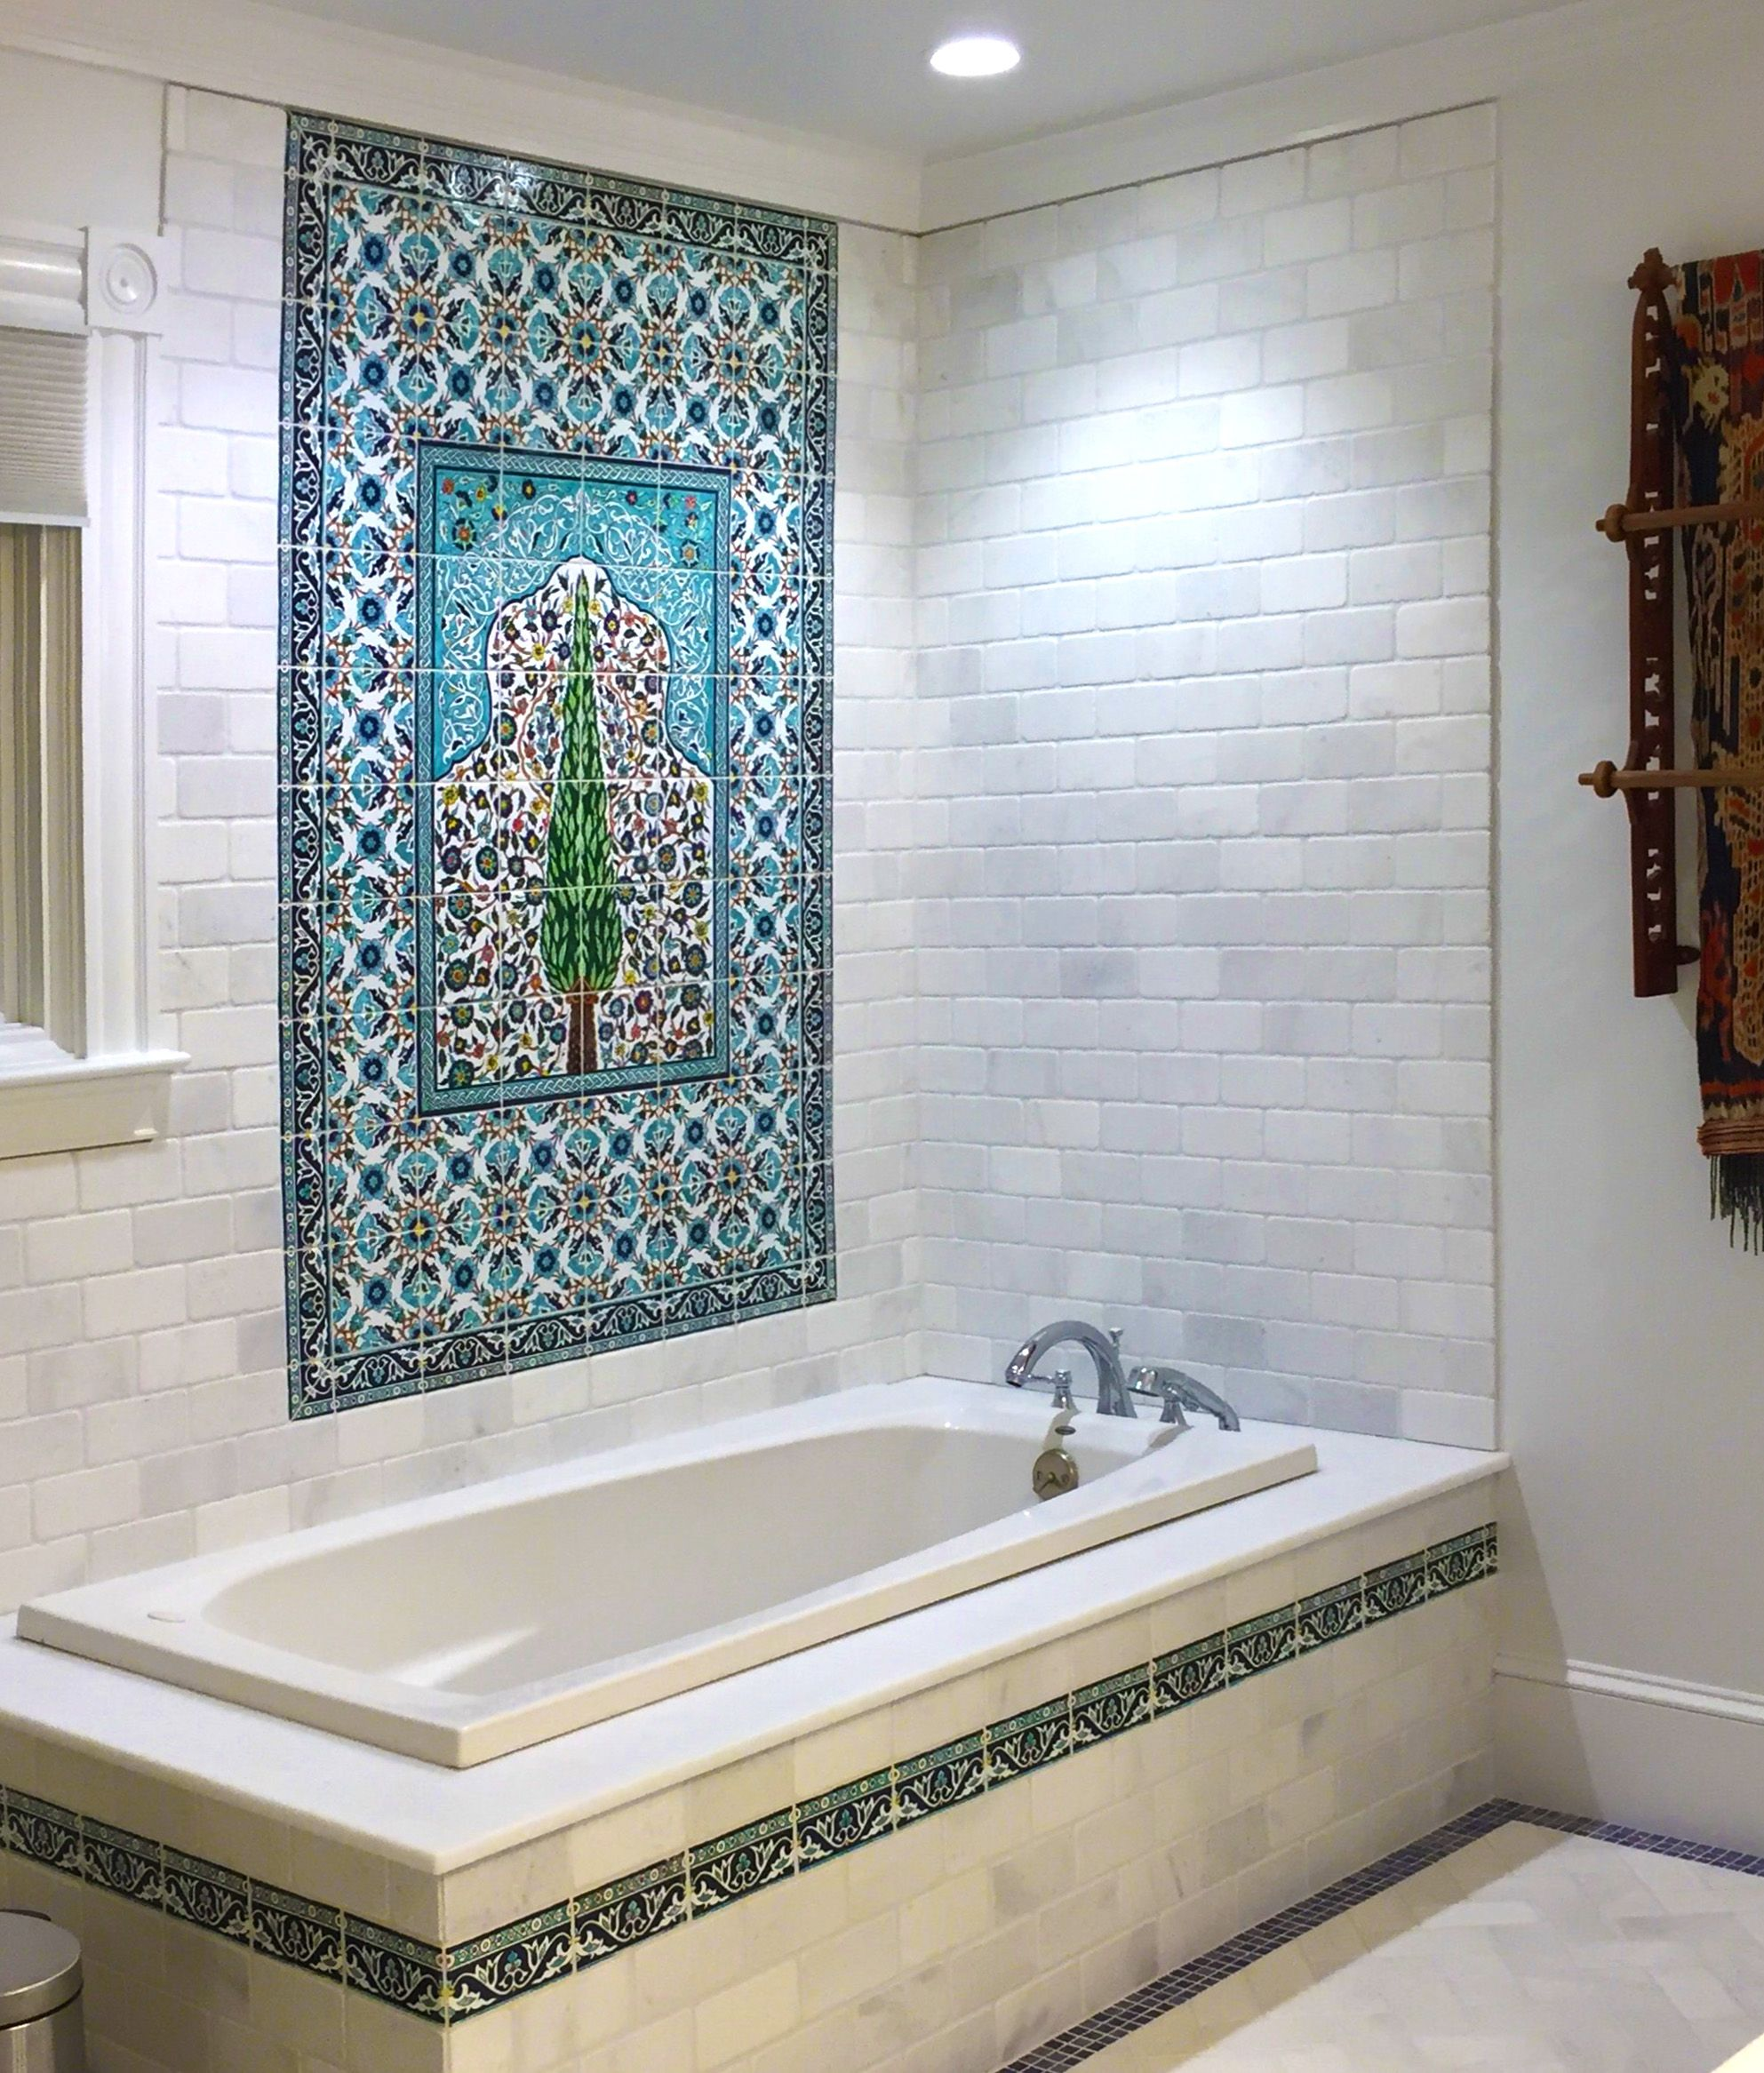 Spectacular hand painted tile bathroom by the Balian tile studio in ...